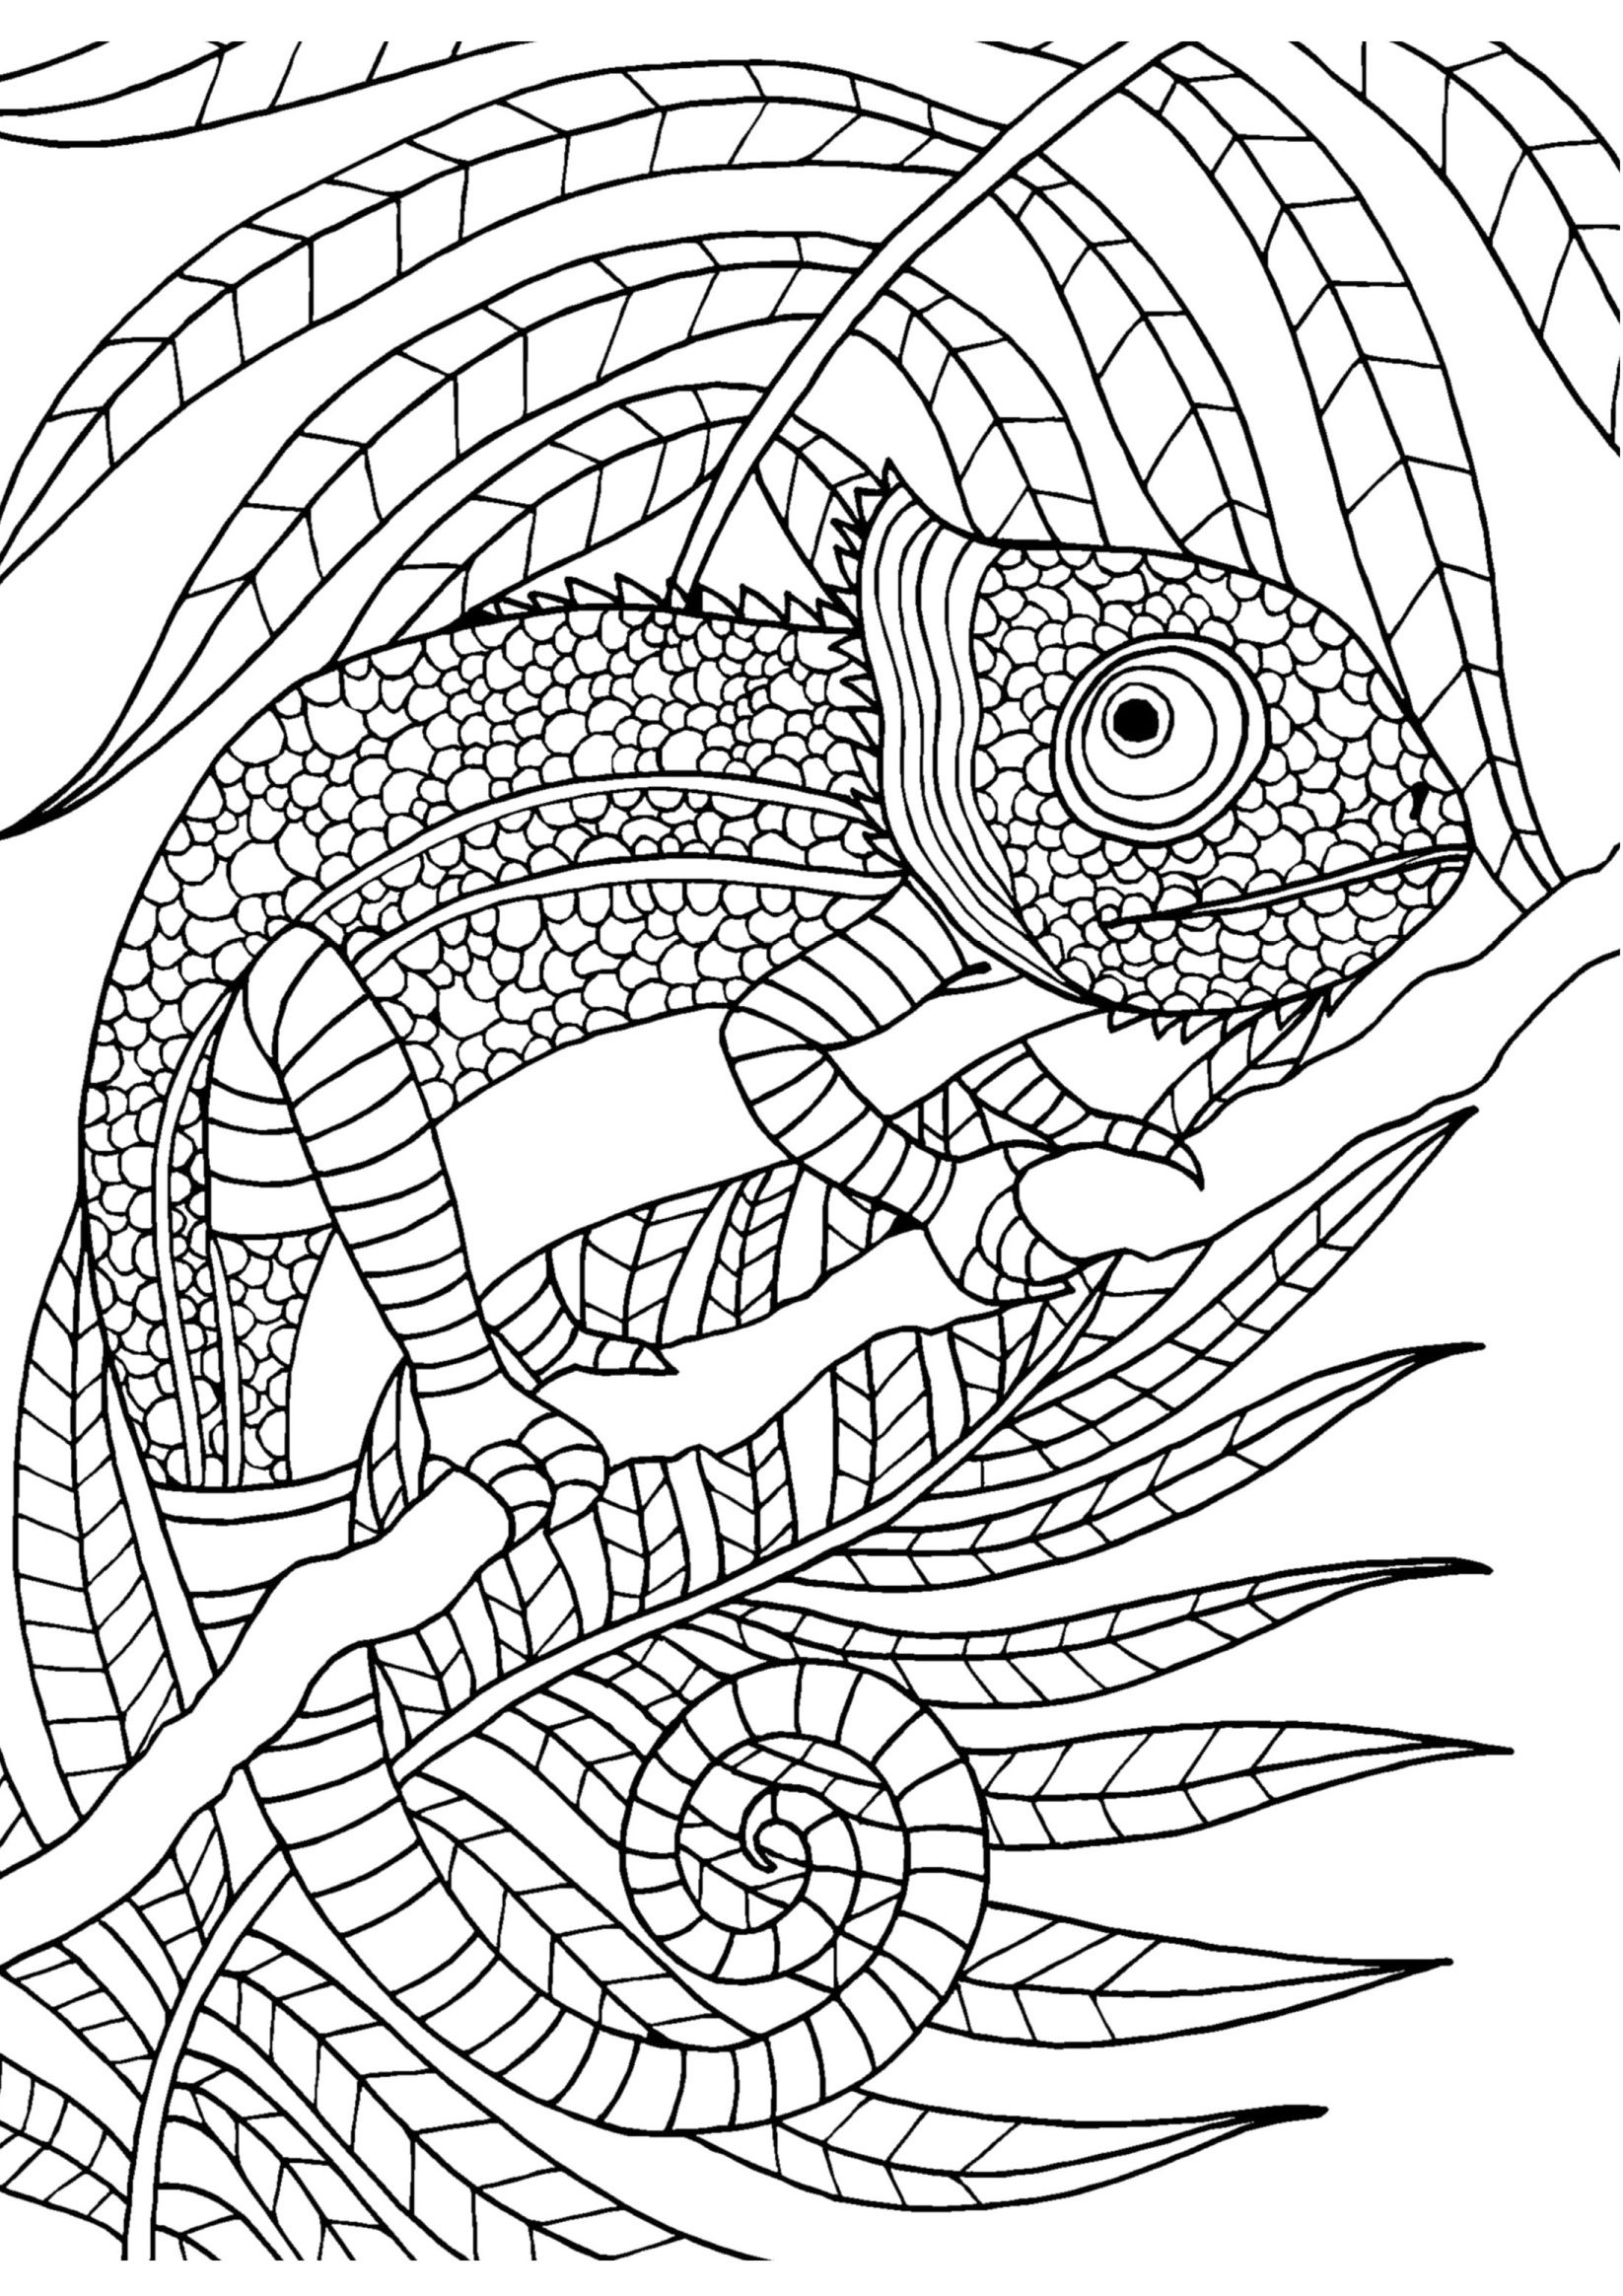 Chameleon Adult Colouring Page In Sheets